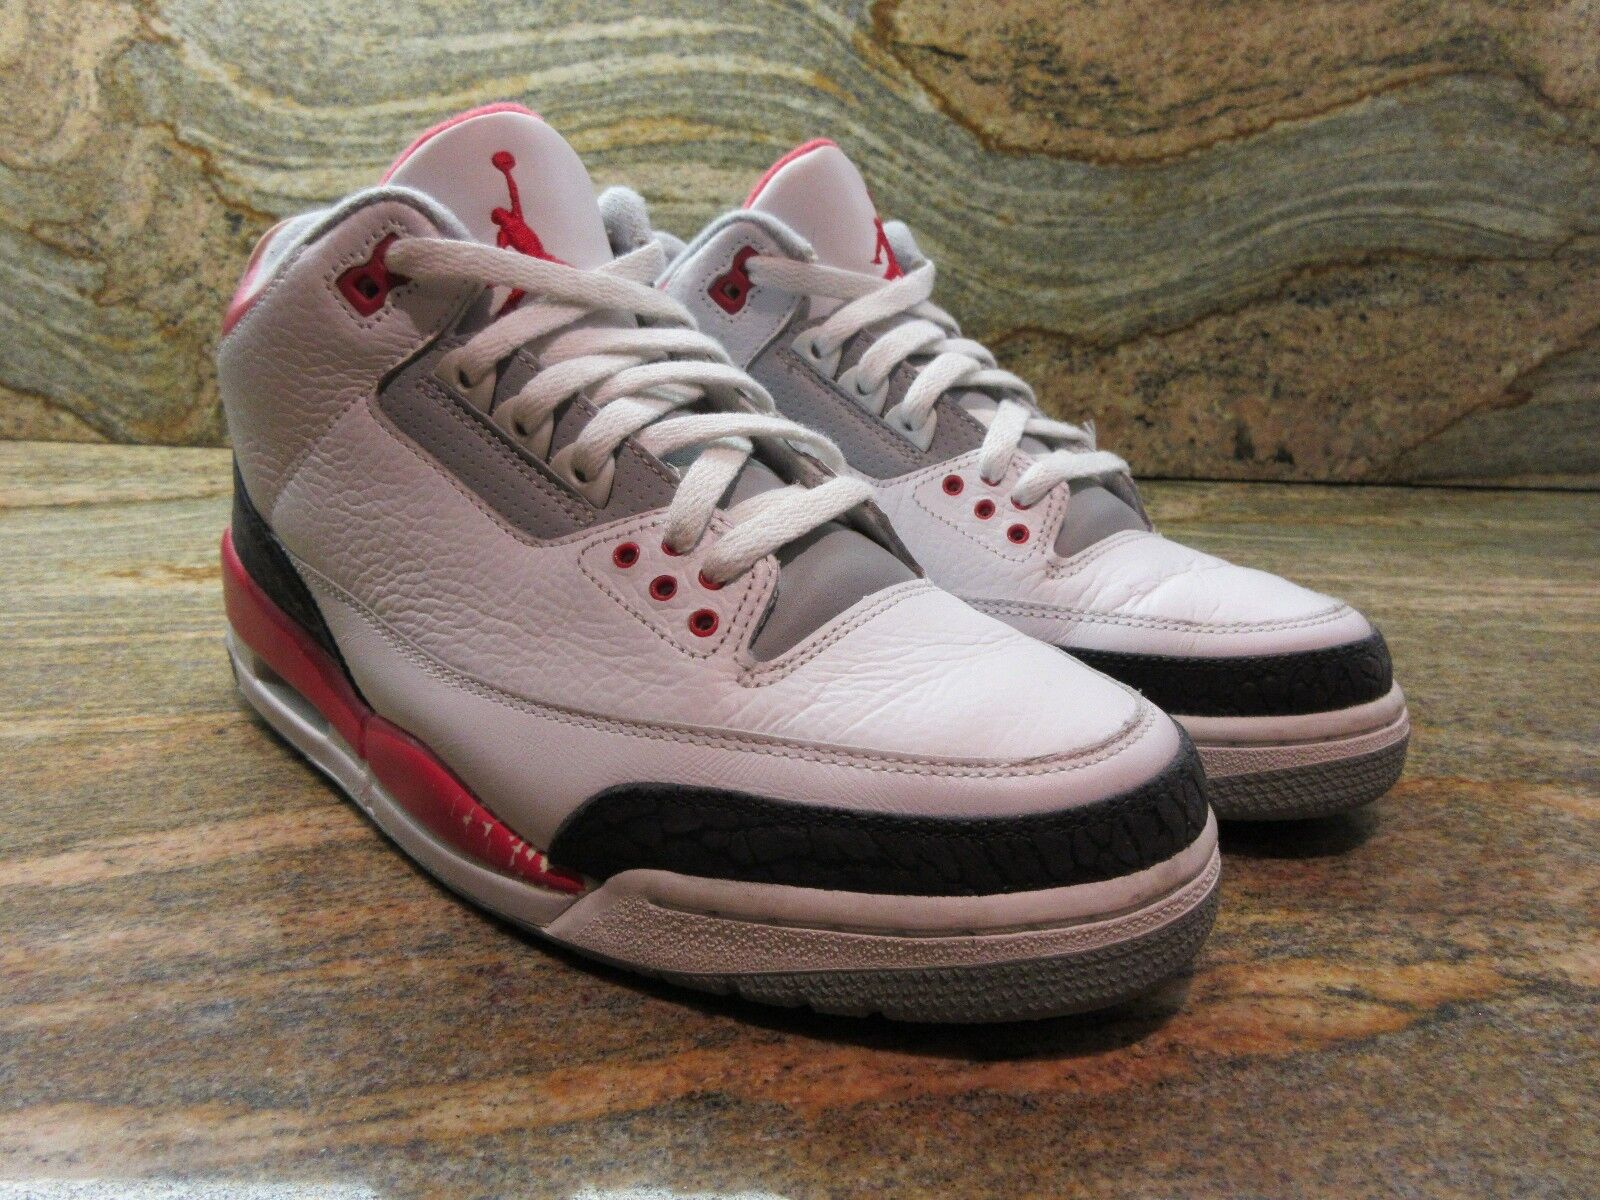 2006 Nike Air Jordan Retro 3 III OG SZ 9 White Fire Red Cement Grey 136064-161